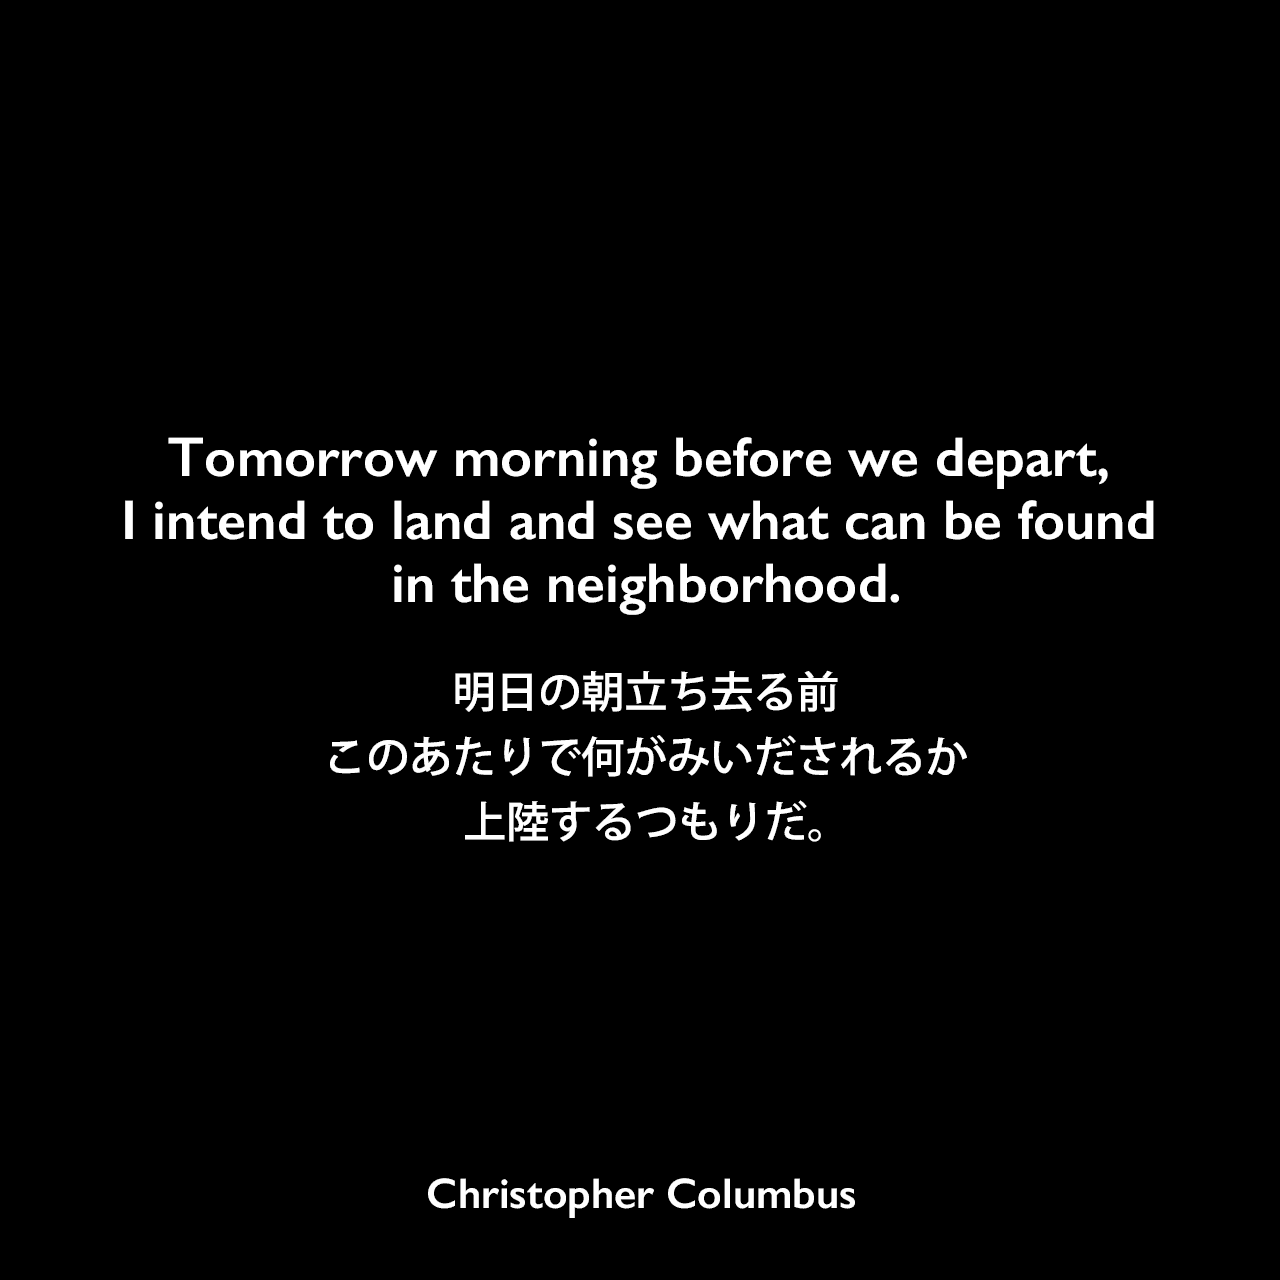 Tomorrow morning before we depart, I intend to land and see what can be found in the neighborhood.明日の朝立ち去る前、このあたりで何がみいだされるか上陸するつもりだ。Christopher Columbus